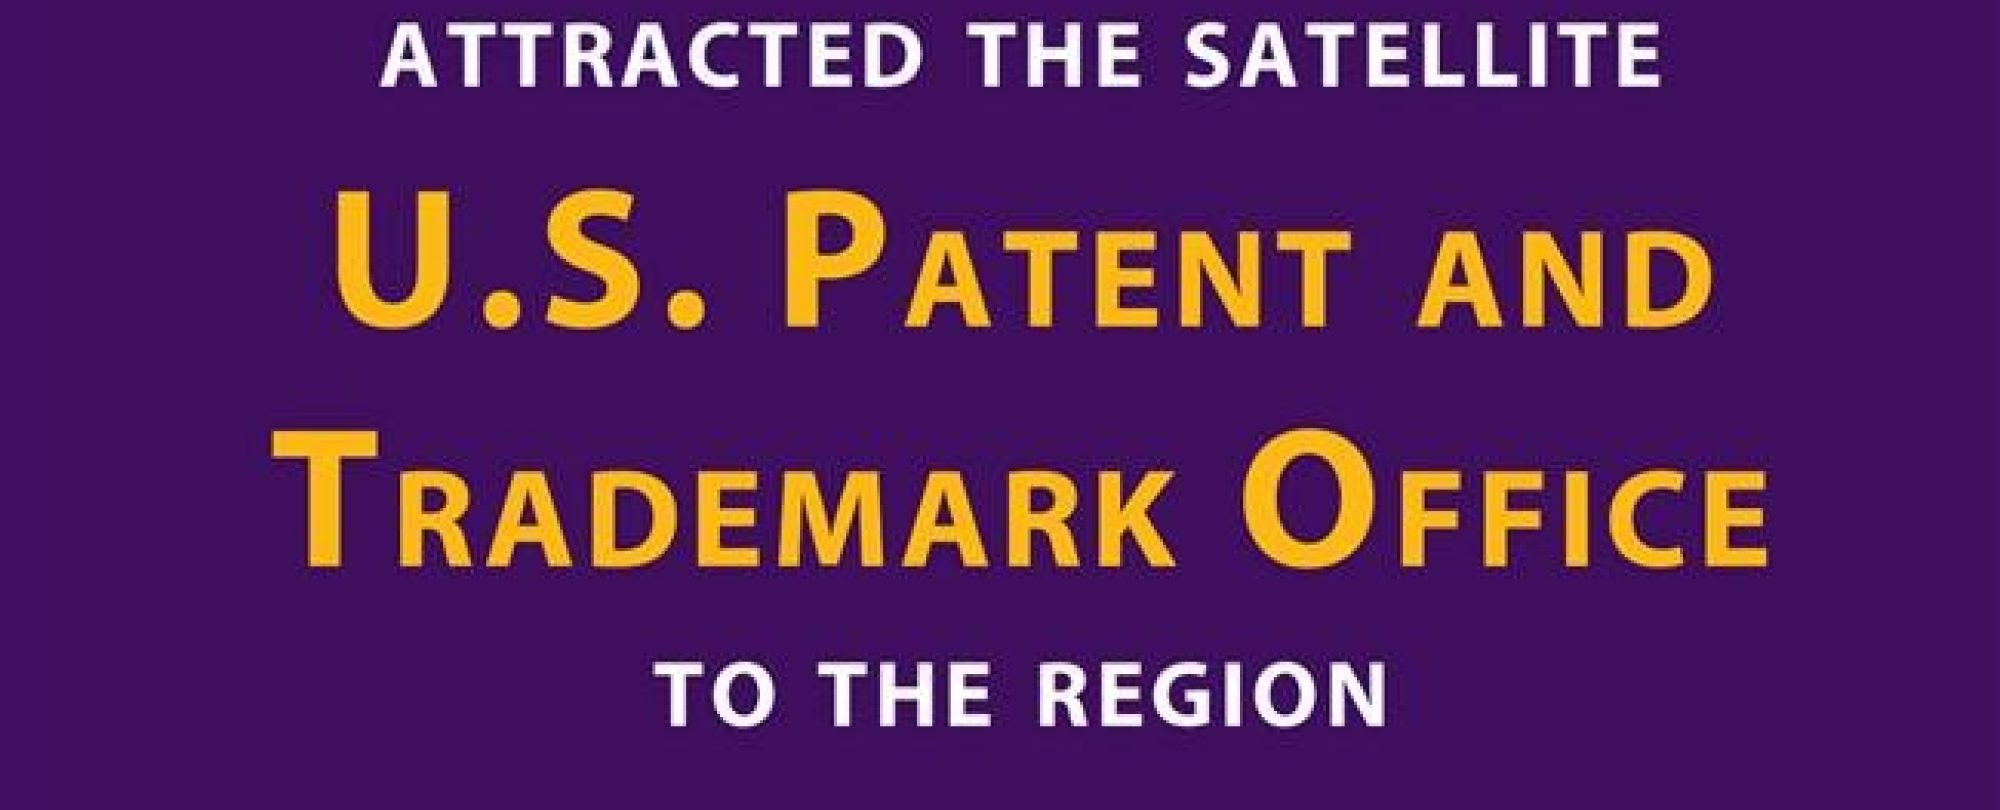 Attracted the satellite U.S. Patent and Trademark Office to the region